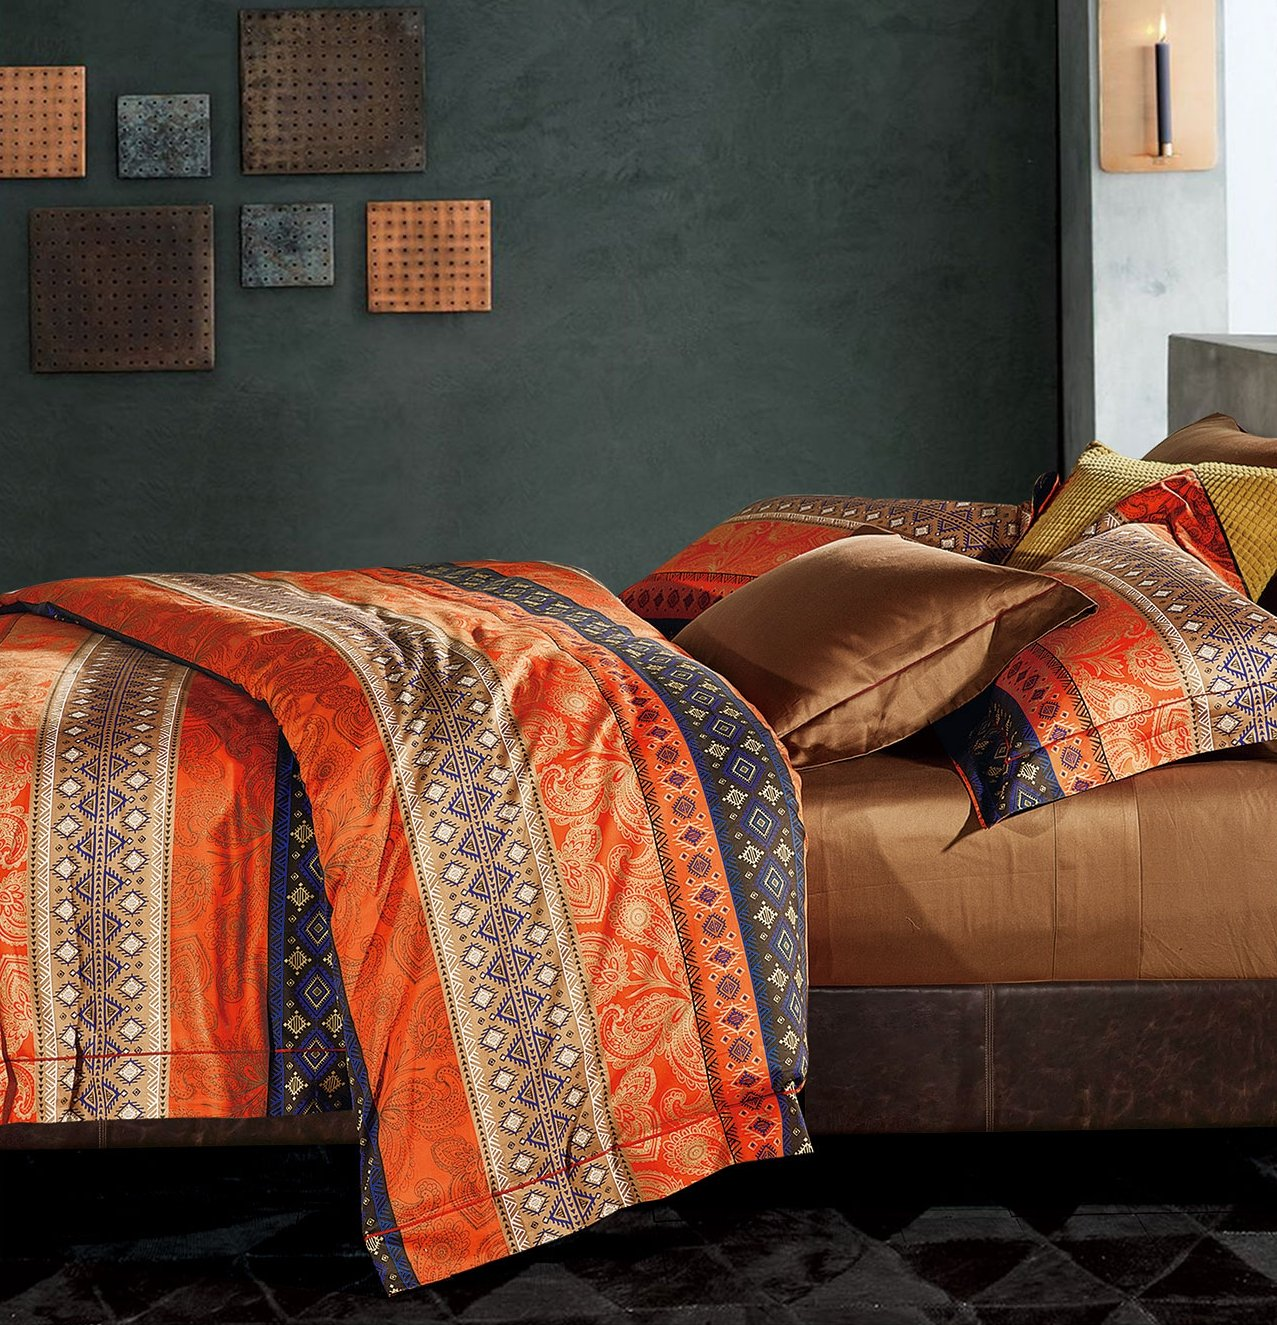 Bohemian Duvet Cover Striped Ethnic Boho Reversible Vintage Story Cushion Shabby Patchwork 60x60cm 2 Southwestern 400tc Cotton King Size Bedding 3pc Set Navy White Orange Modern Geo Aztec Print